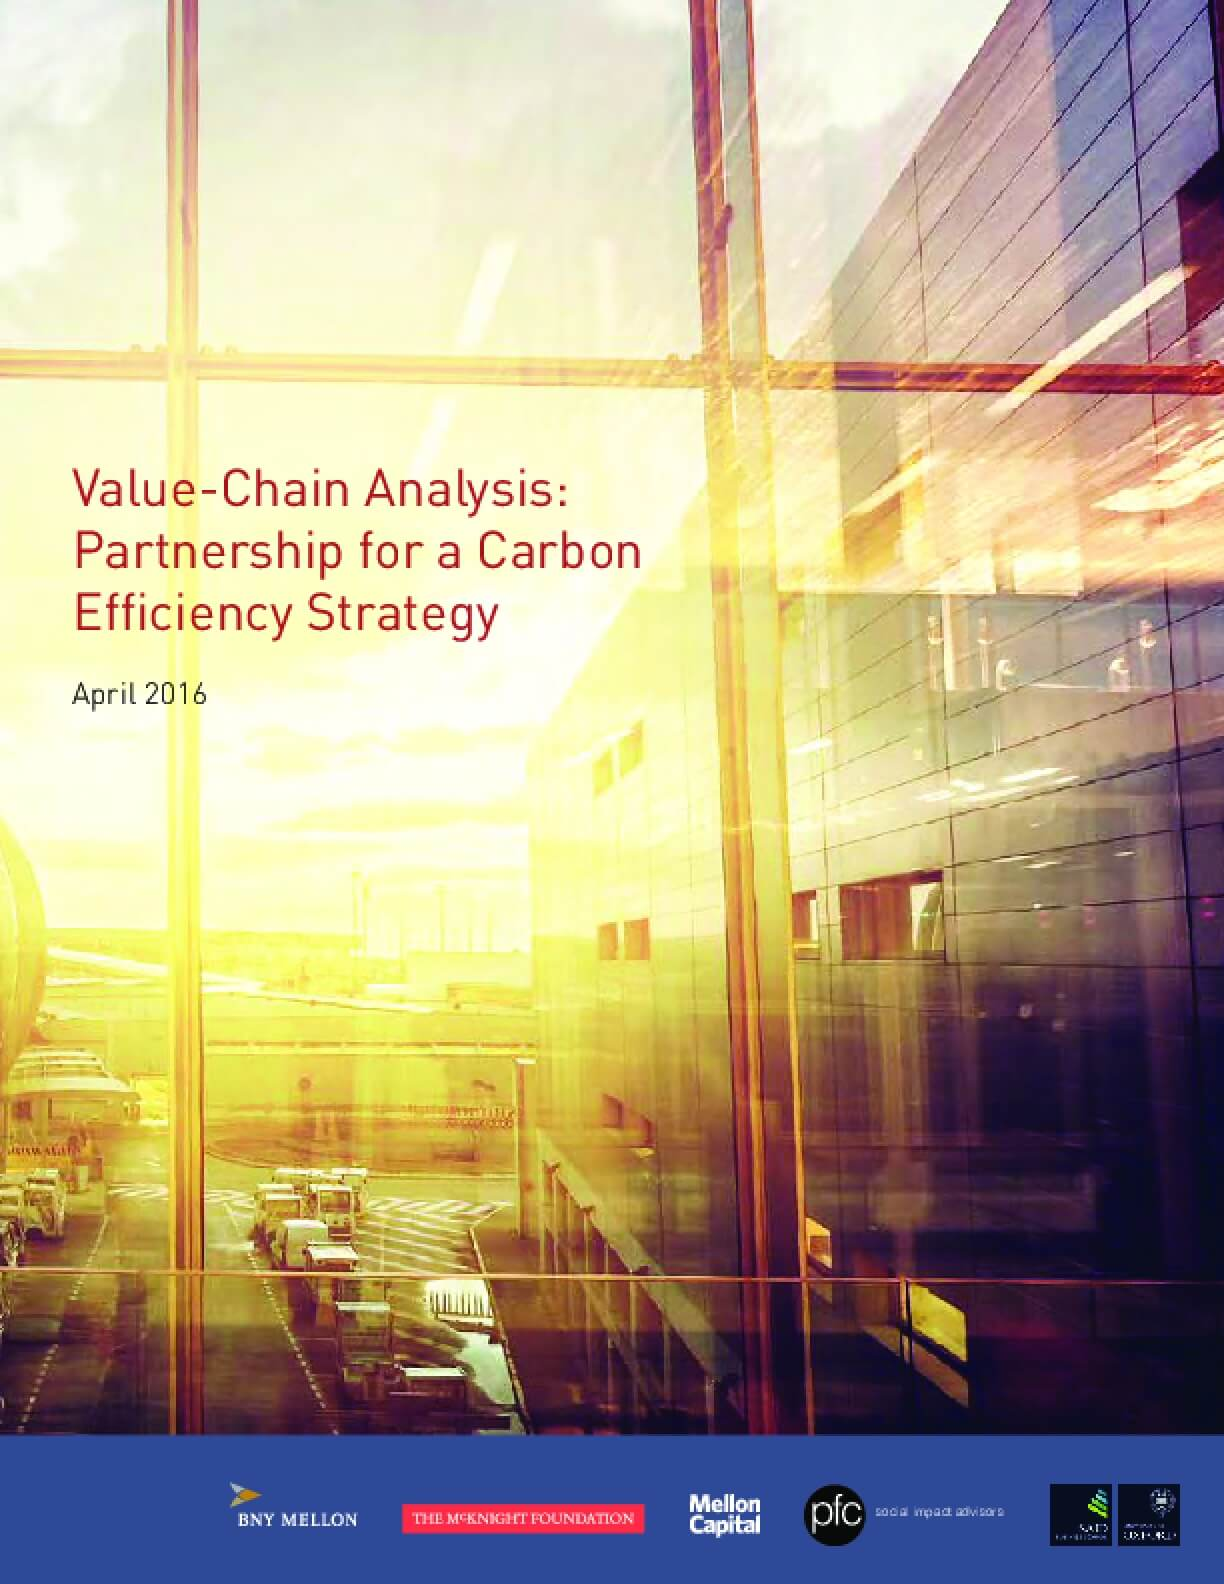 Value-Chain Analysis: Partnership for a Carbon Efficiency Strategy